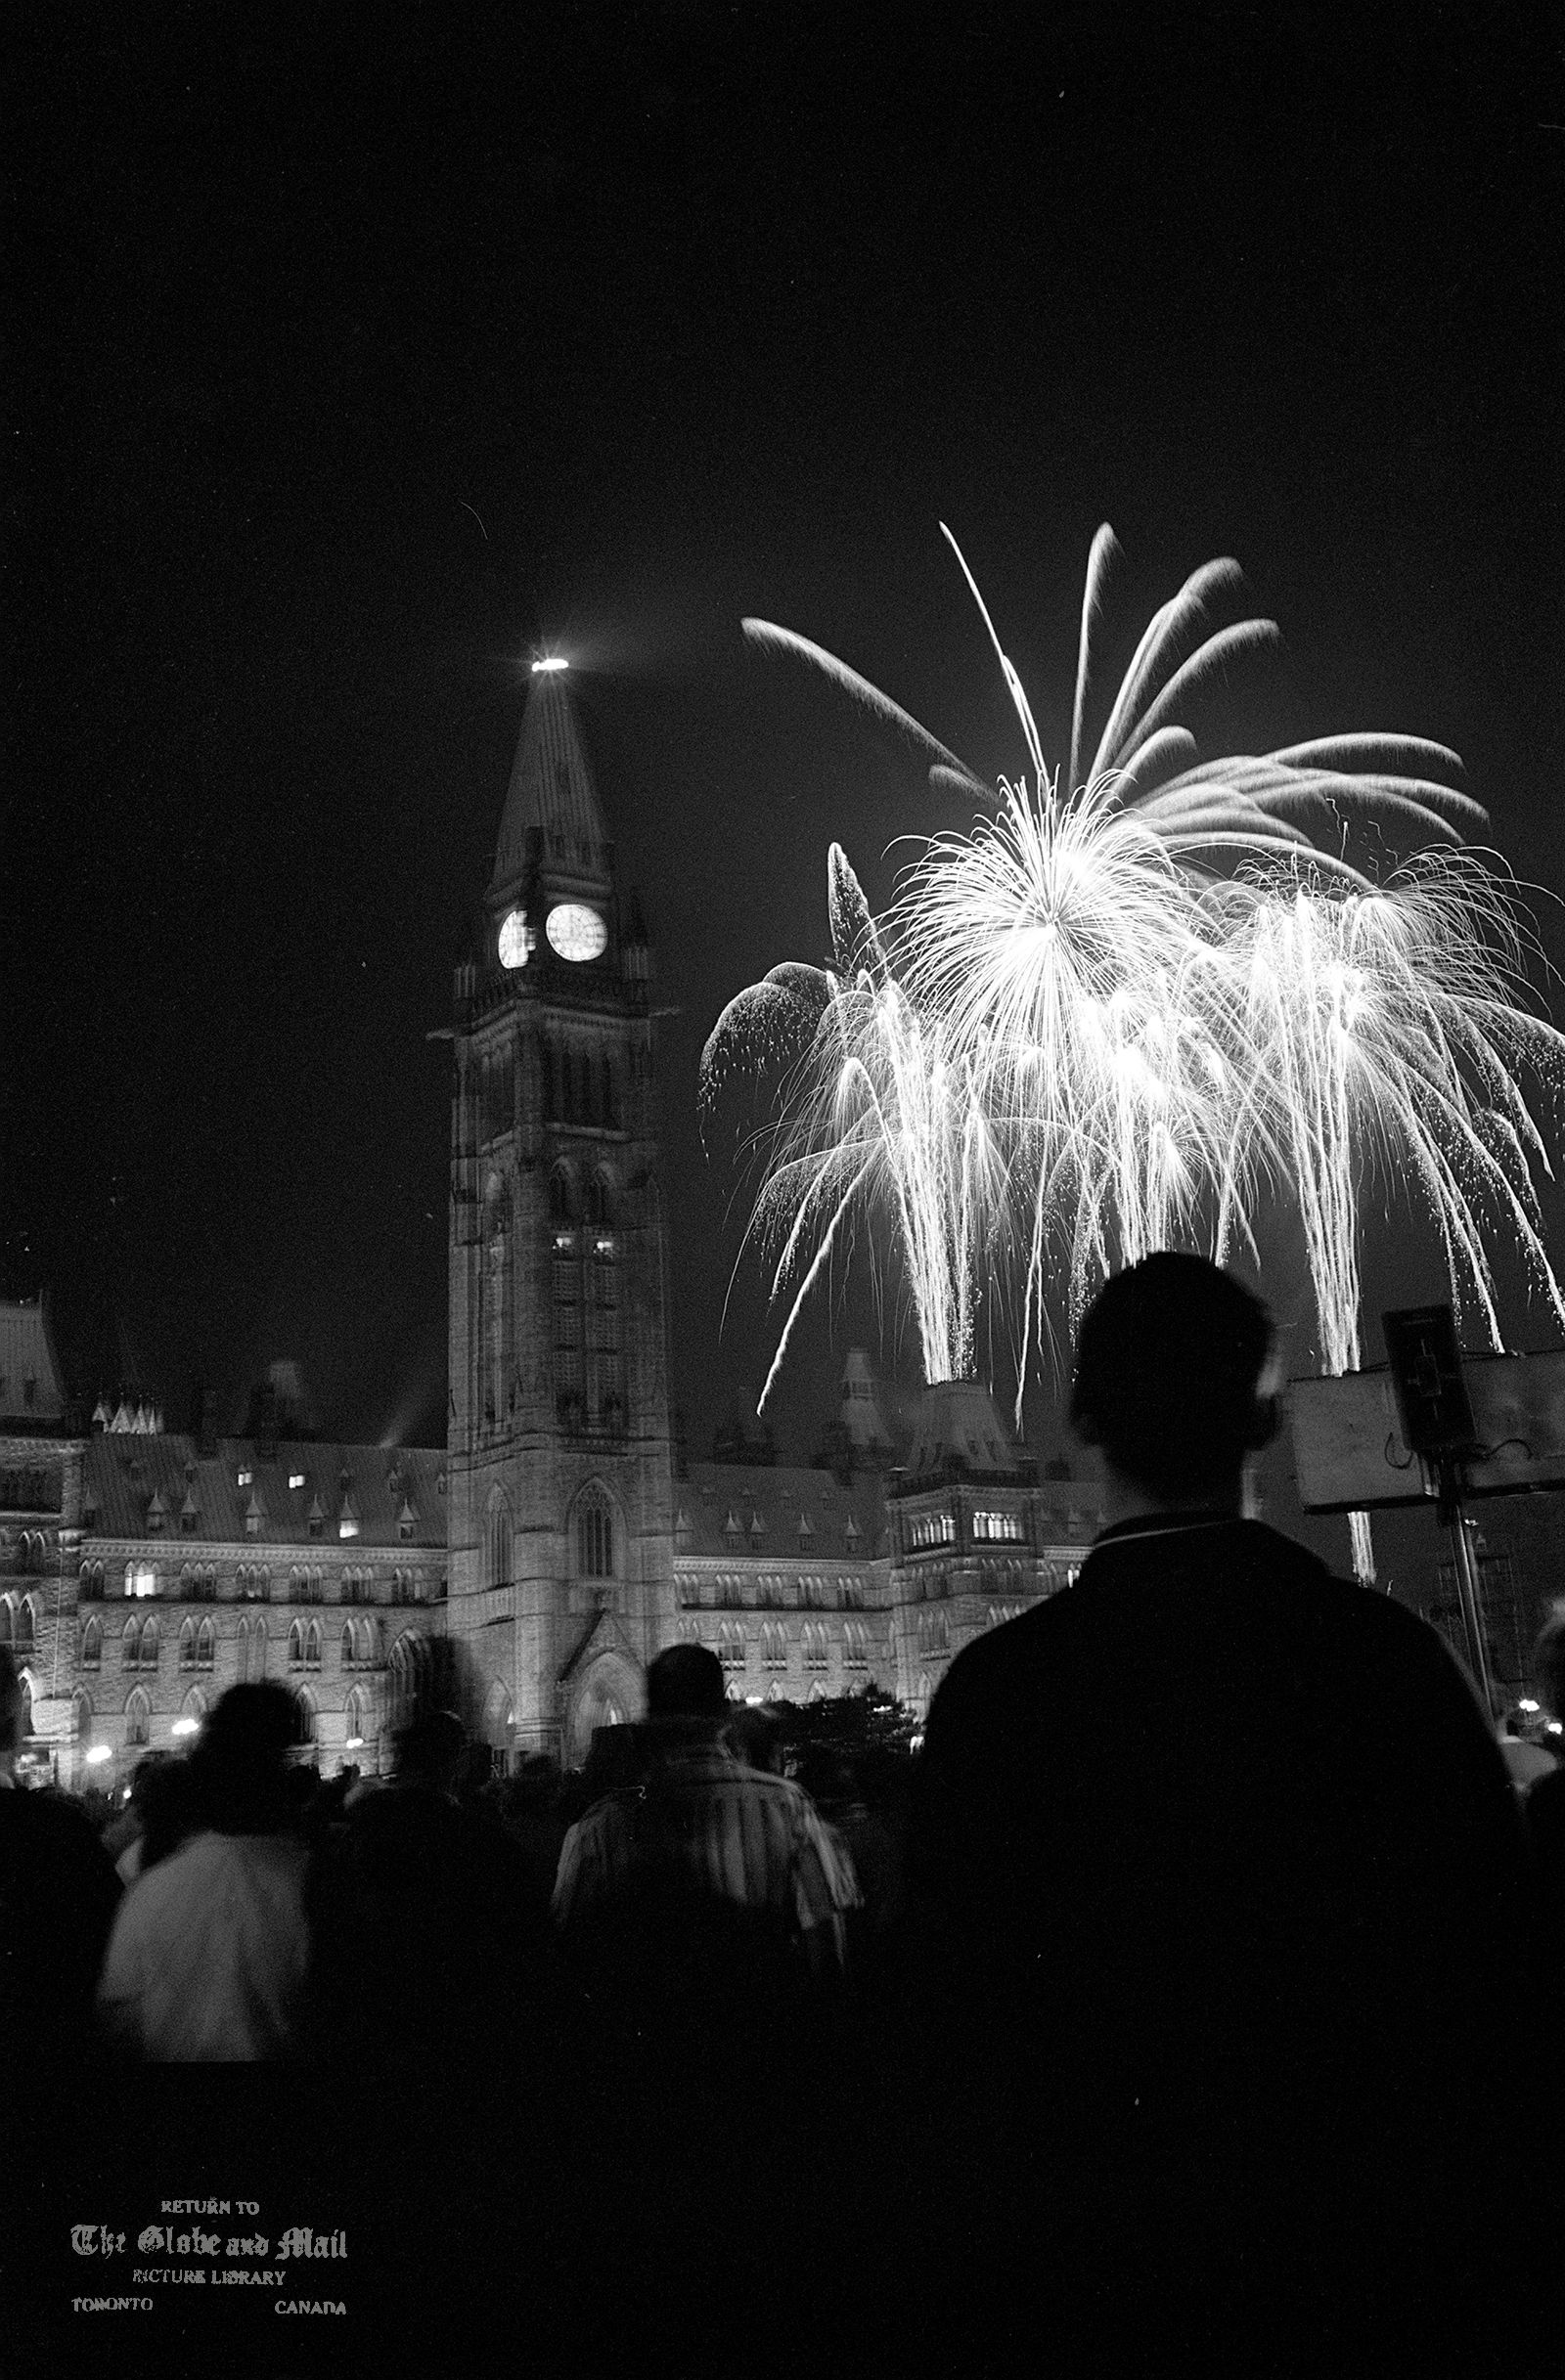 JULY 1, 1967 -- CANADA DAY CELEBRATIONS -- Fireworks display explodes above Parliament Buildings during celebration of Canada's Centennial of Confederation. Photo by John McNeill / The Globe and Mail (Scanned from Neg. 67181-4) COPYRIGHT VERIFIED. STAFF PHOTOGRAPHER. GLOBE AND MAIL CREDIT. CLEARED FOR ALL USES.